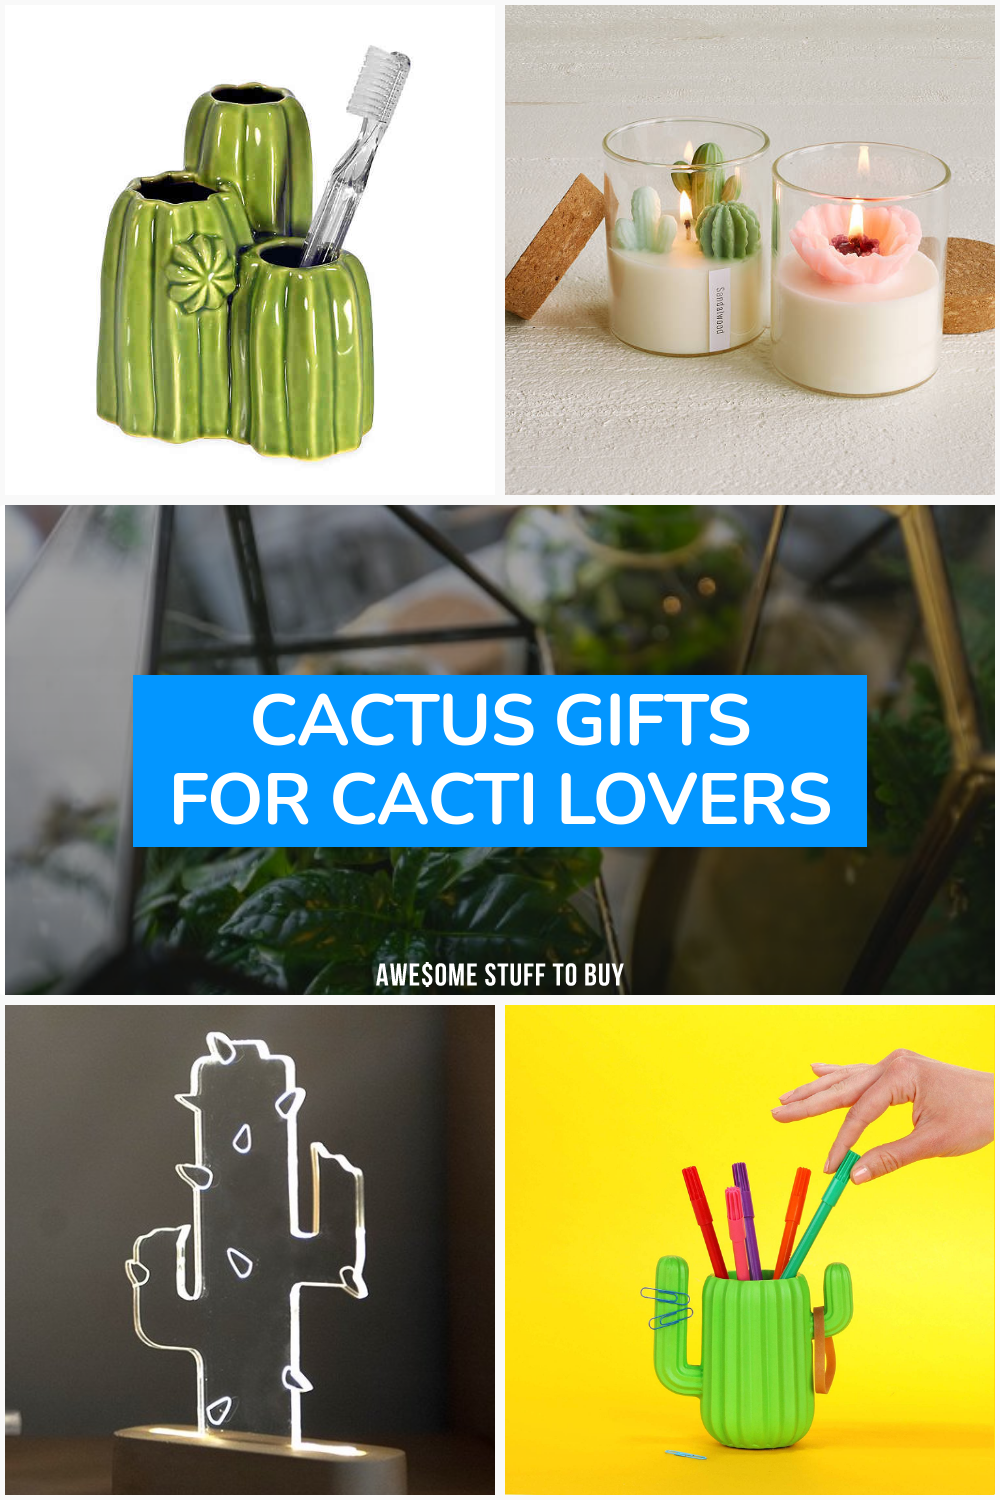 Cactus Gifts for Cacti Lovers // Awesome Stuff to Buy